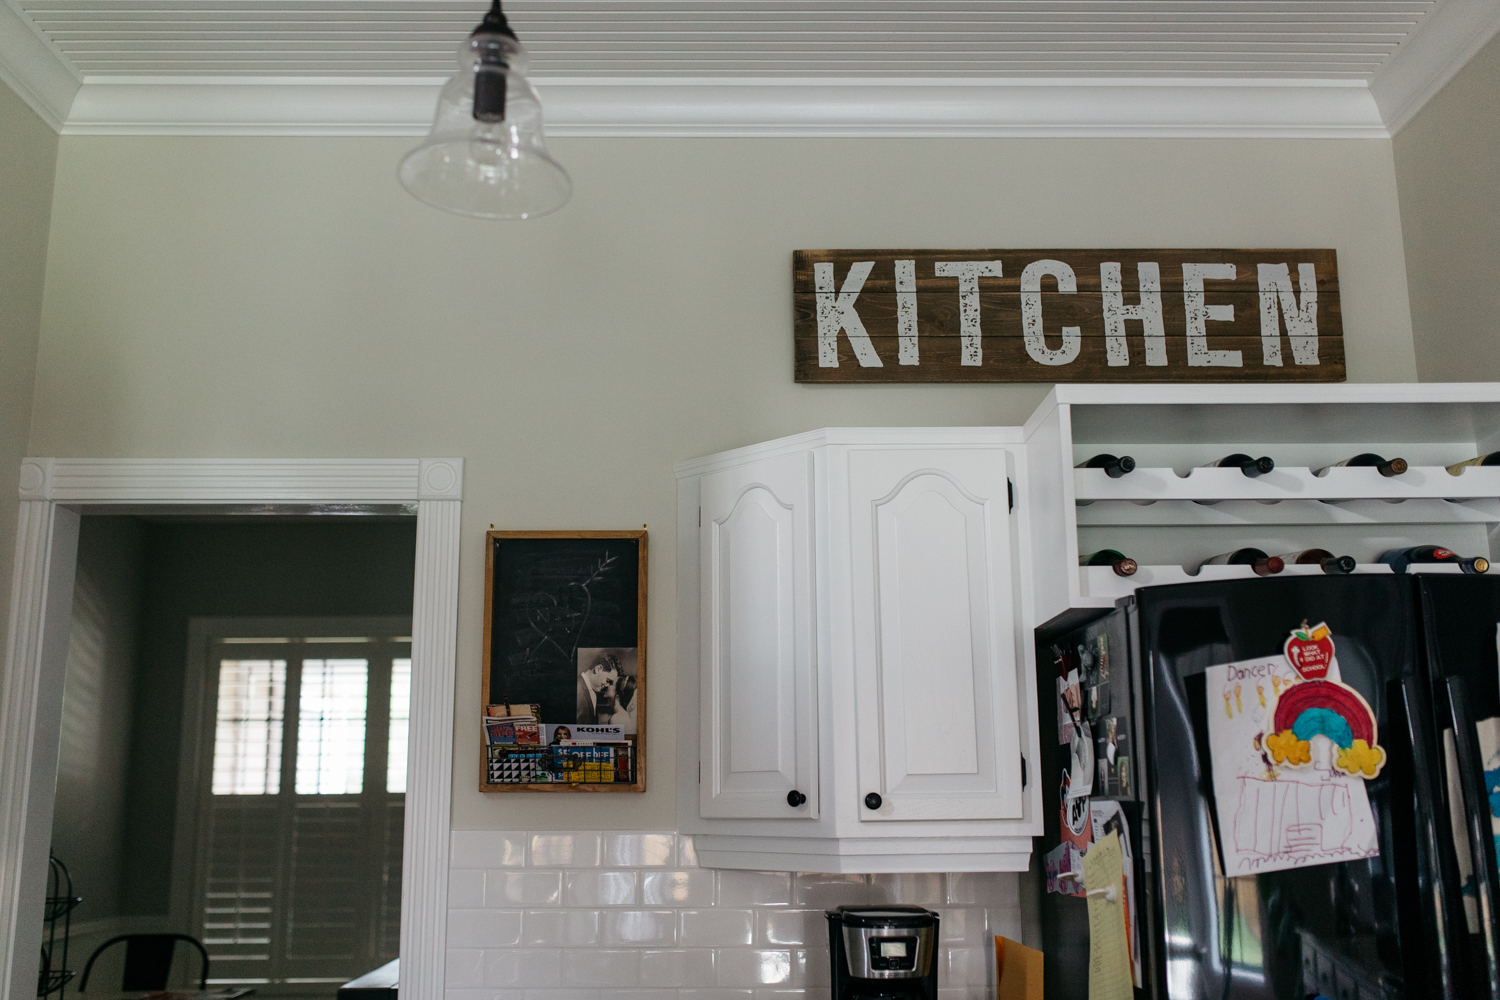 Kitchen Sign in Kitchen Central Florida Documentary Photographer